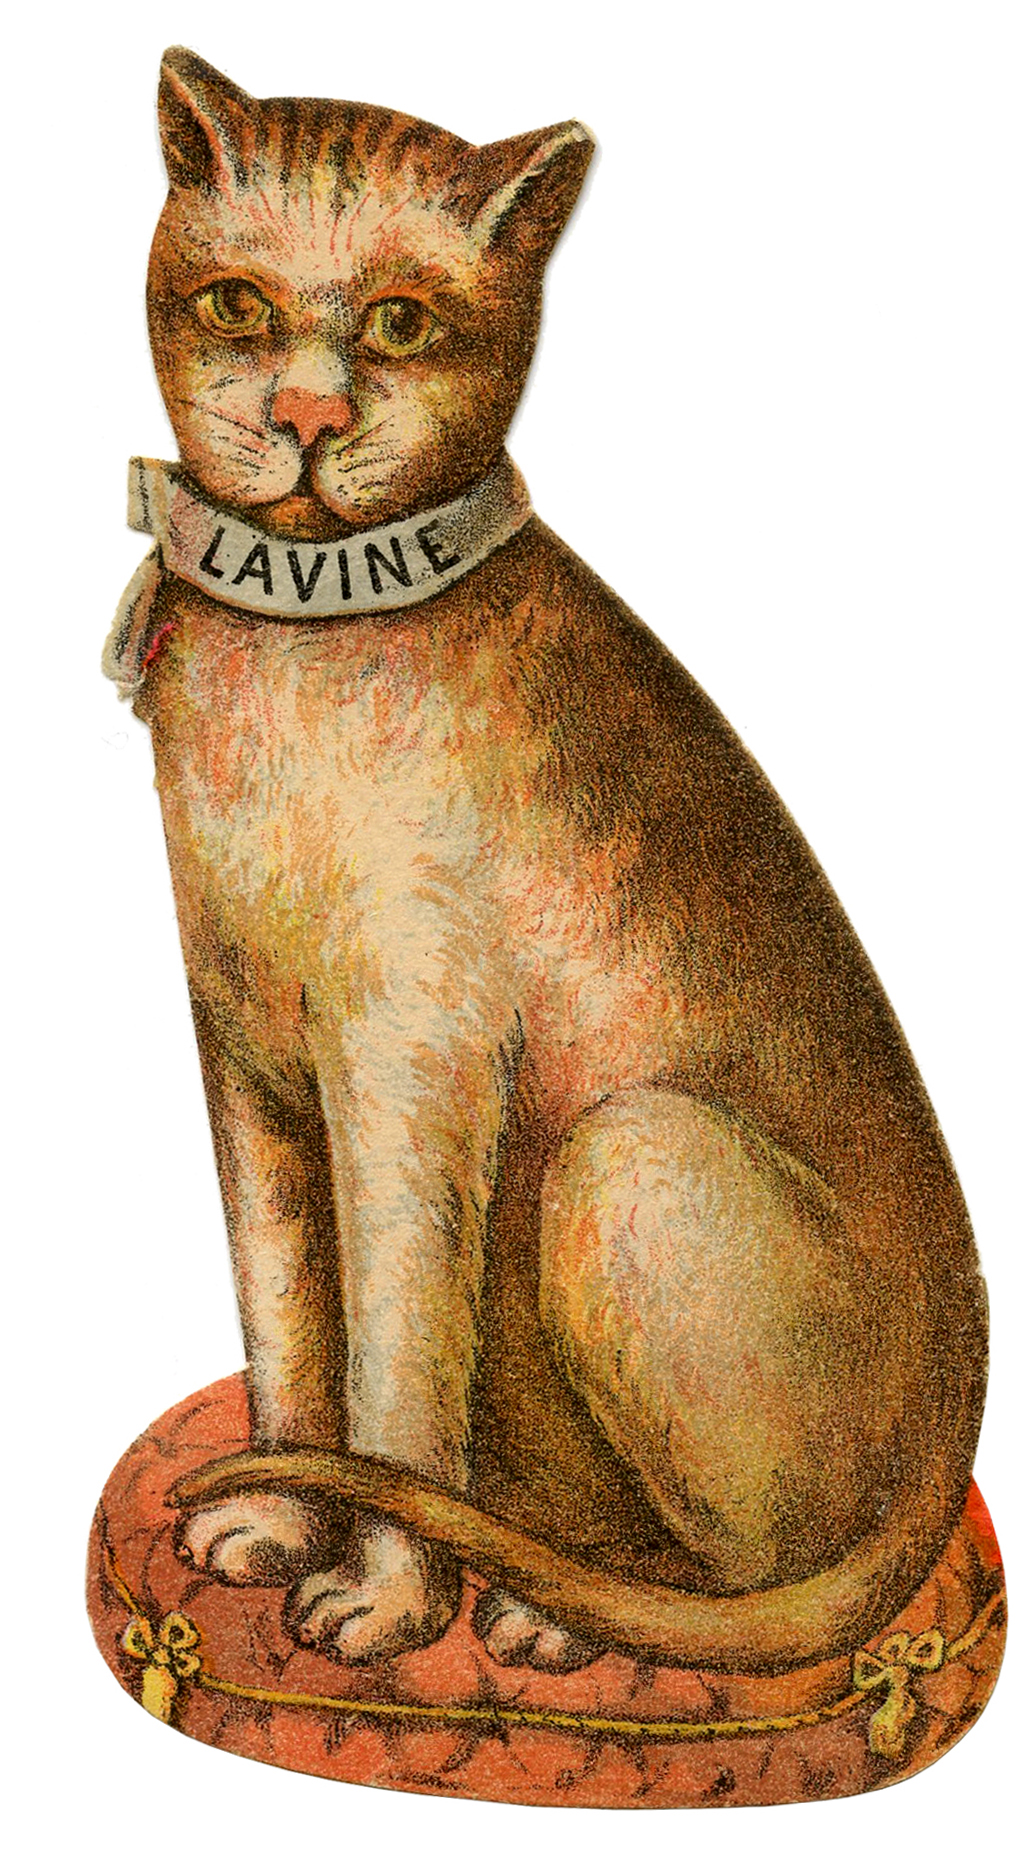 Free Vintage Cat Download - Quirky! - The Graphics Fairy